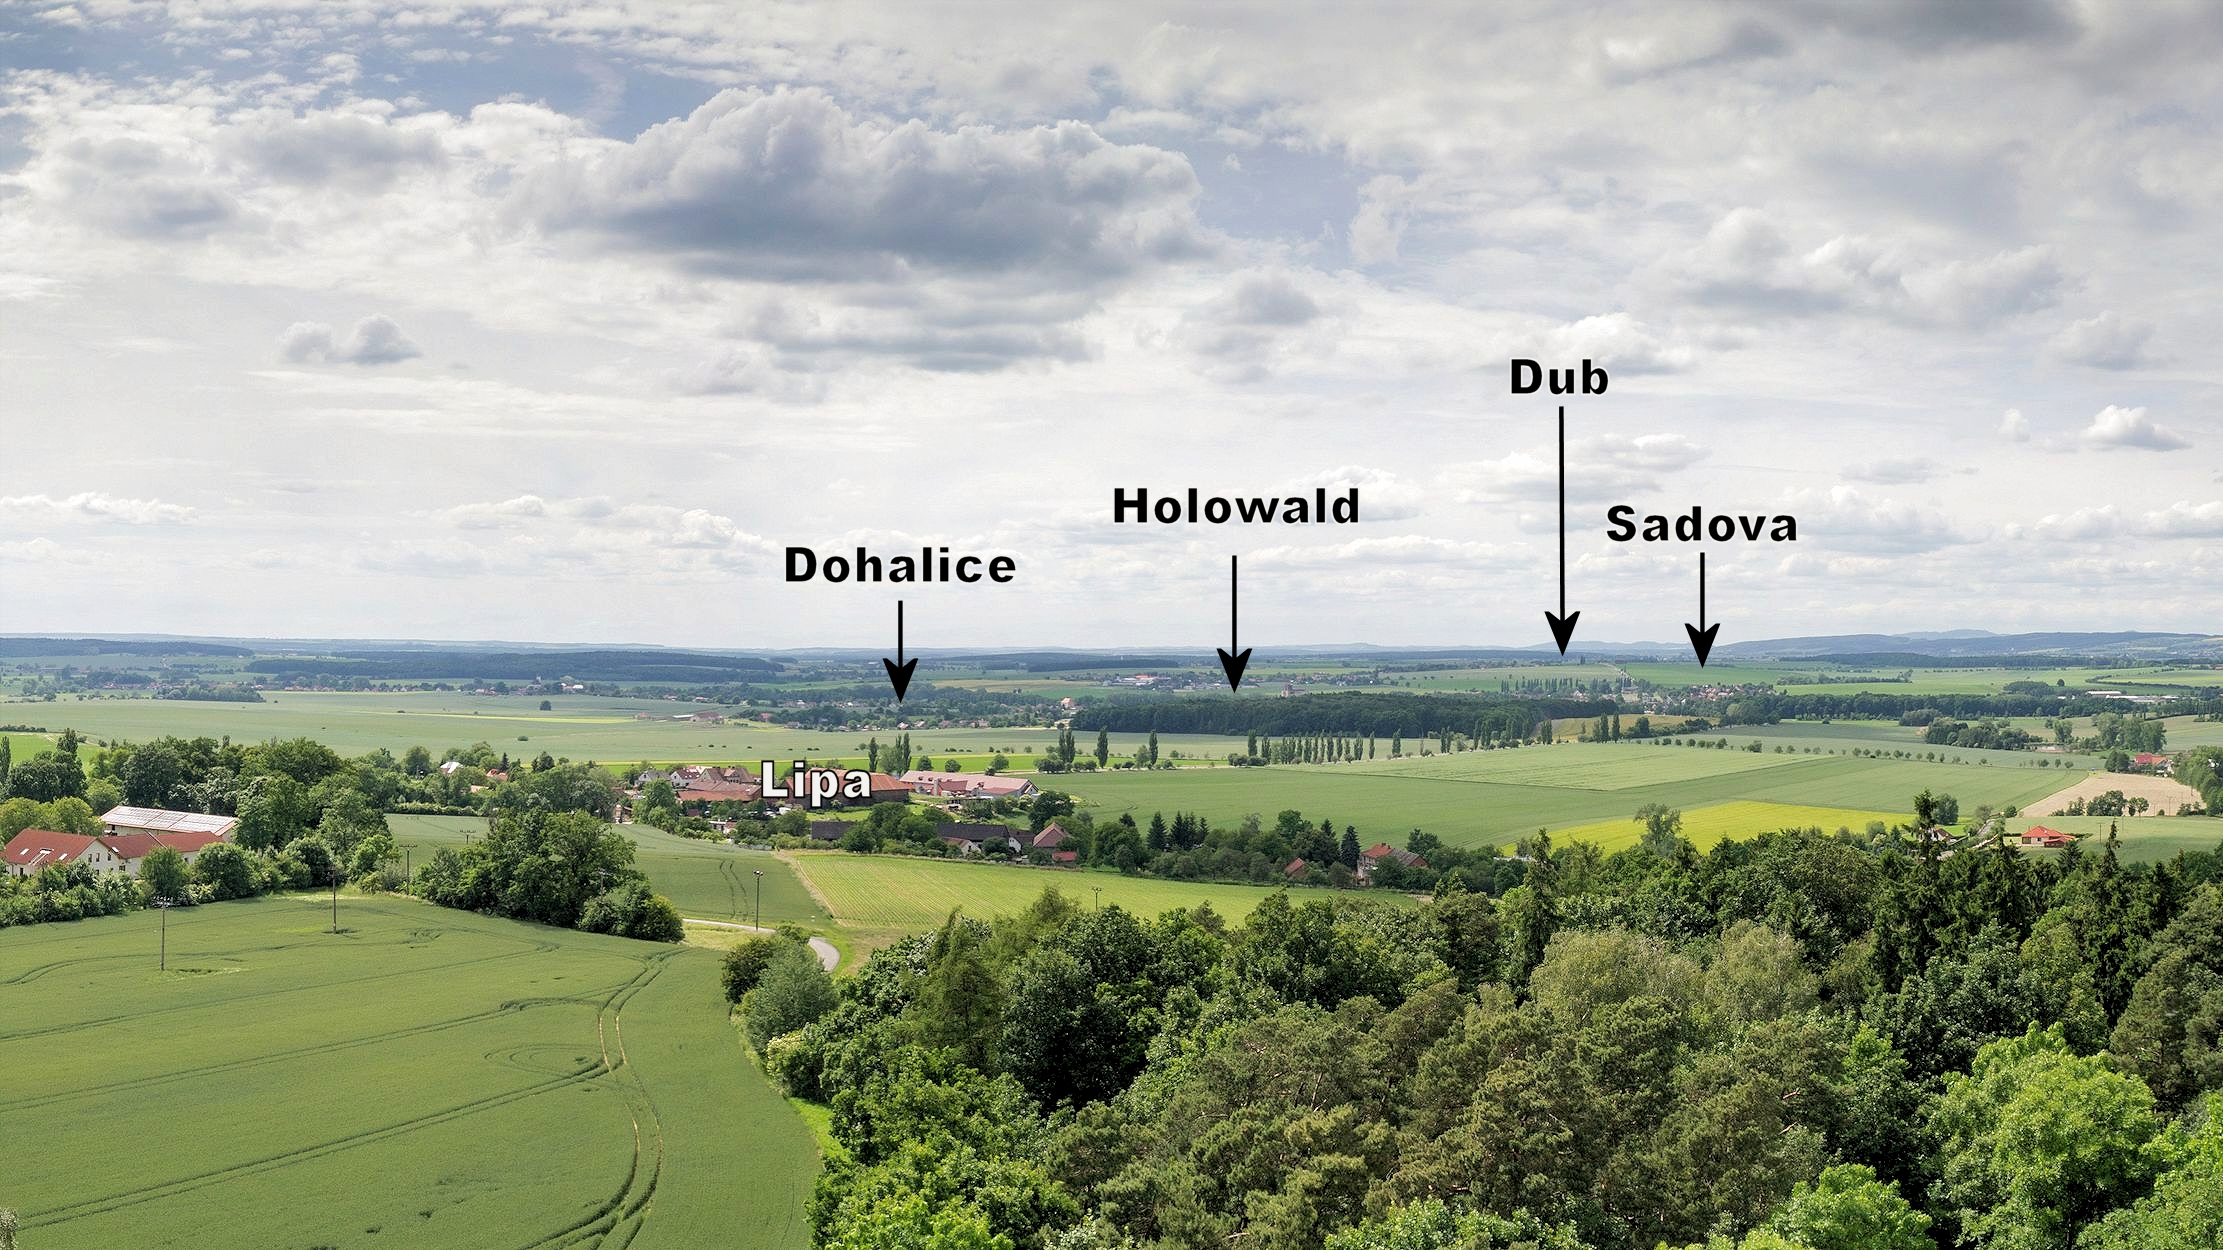 Looking North West towards Lipa and Holowald woods. Sadowa and Dub are in the distance. Dohalice and the line of the Bystrice river are just visible behind the woods.